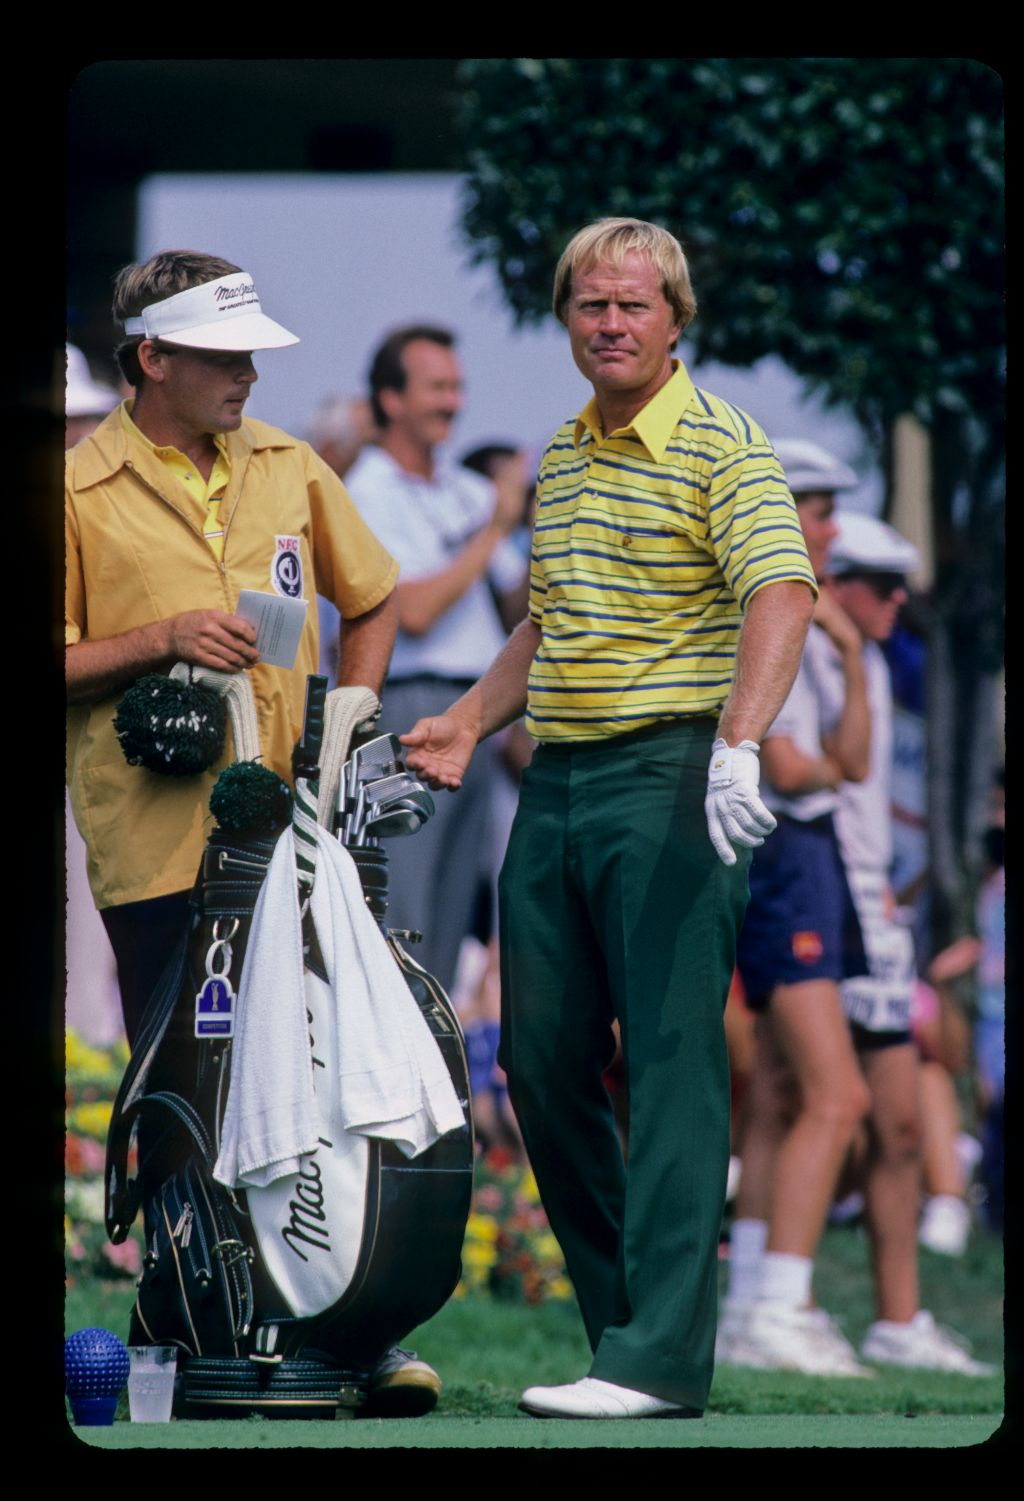 Jack Nicklaus and his caddie making a club selection on the tee during the 1986 World Series of Golf